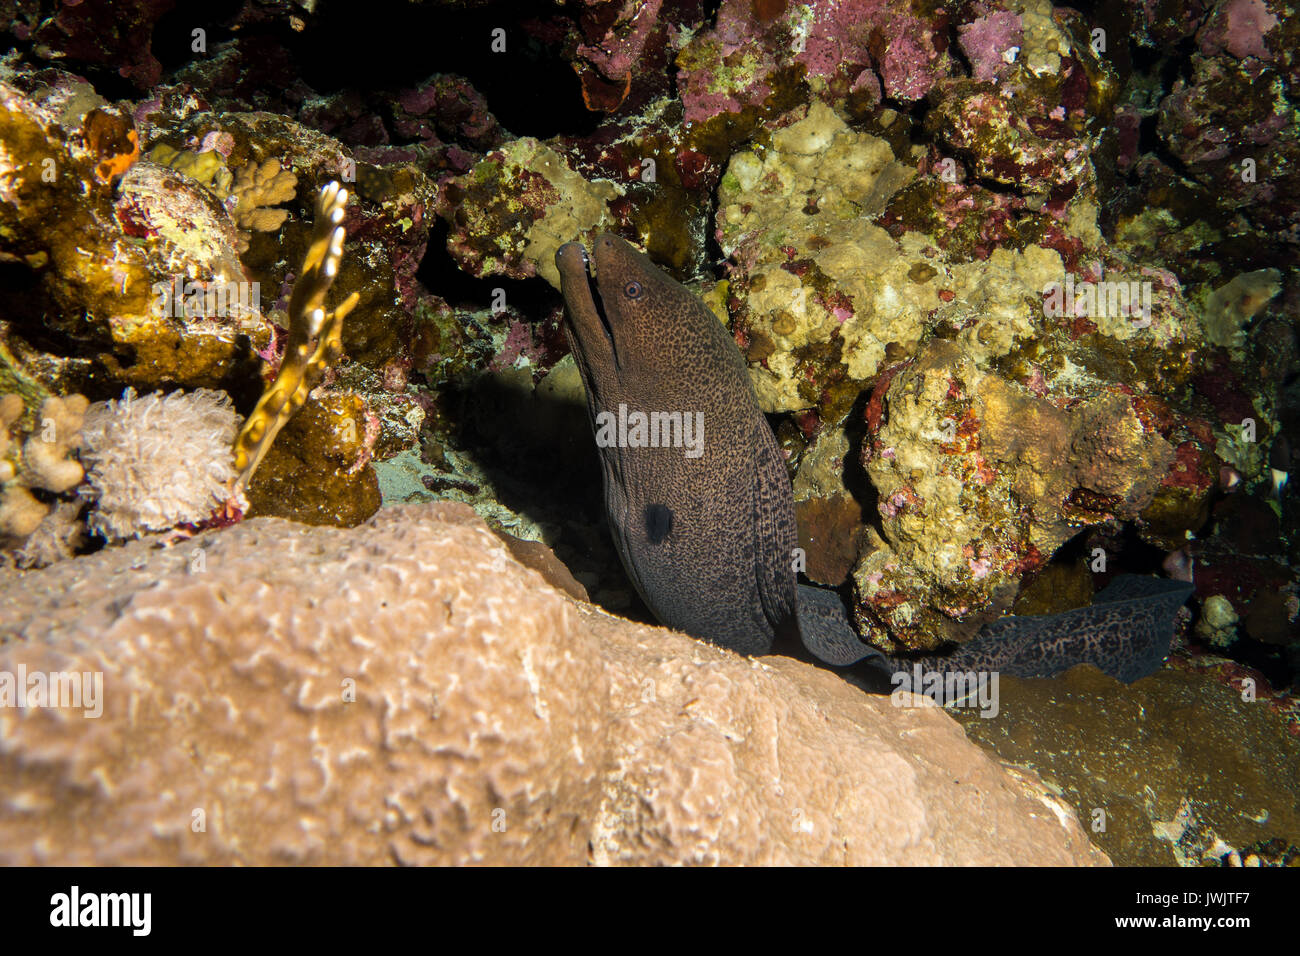 Moray Eel in the red sea in egypt - Stock Image